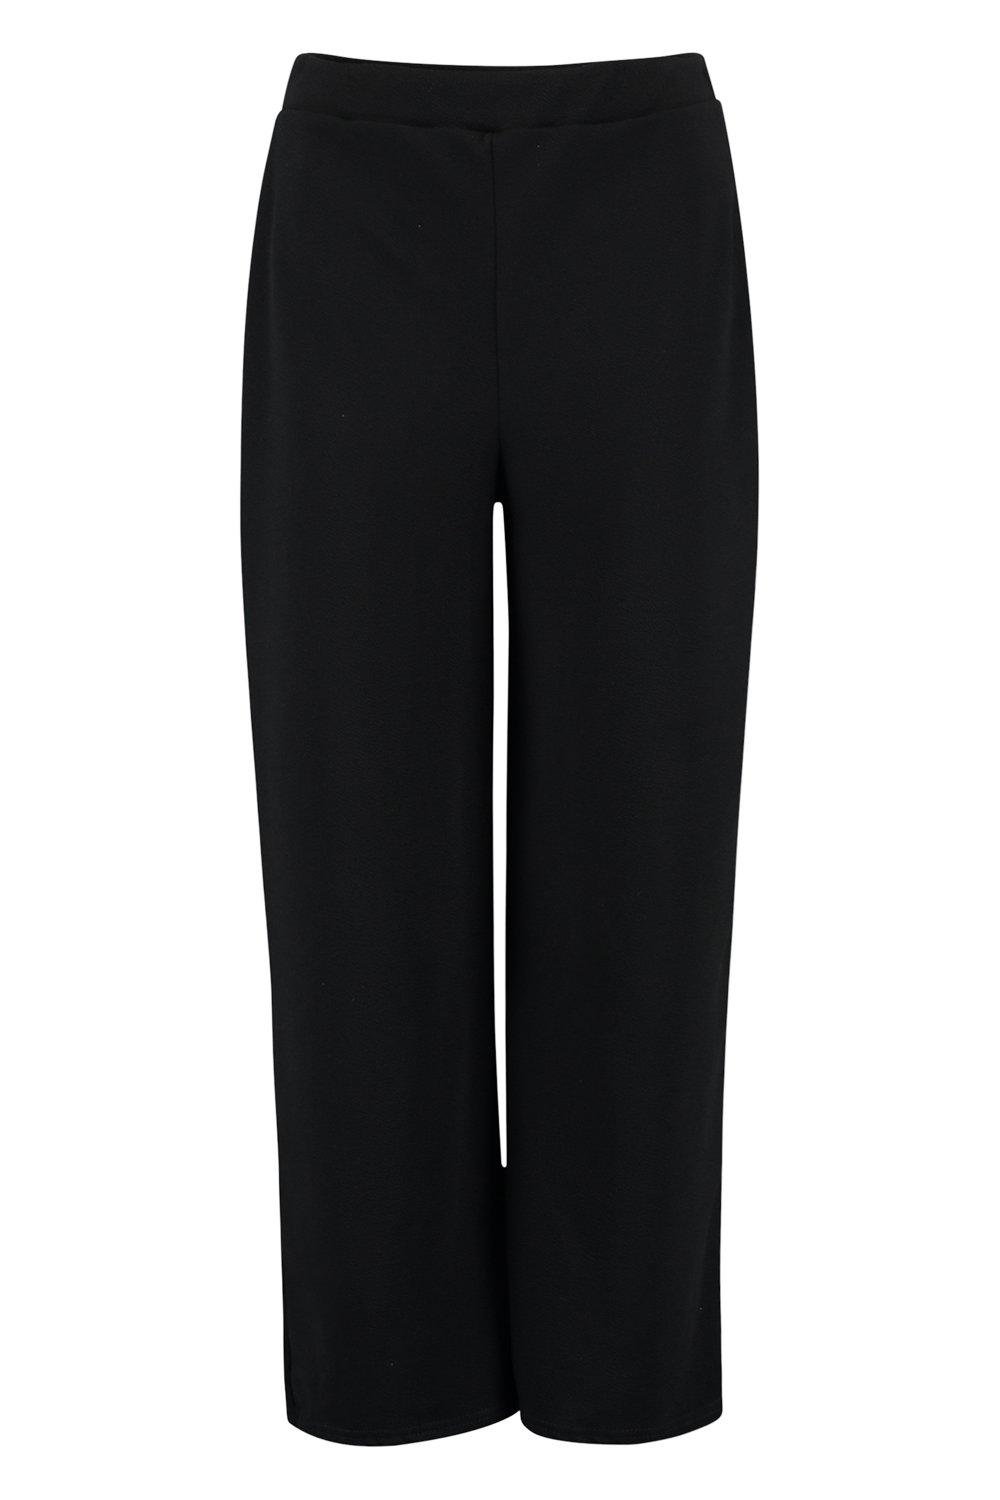 Culottes Culottes Leg black Wide Tall Wide black Tall Wide Tall Leg fxSTqxnzF